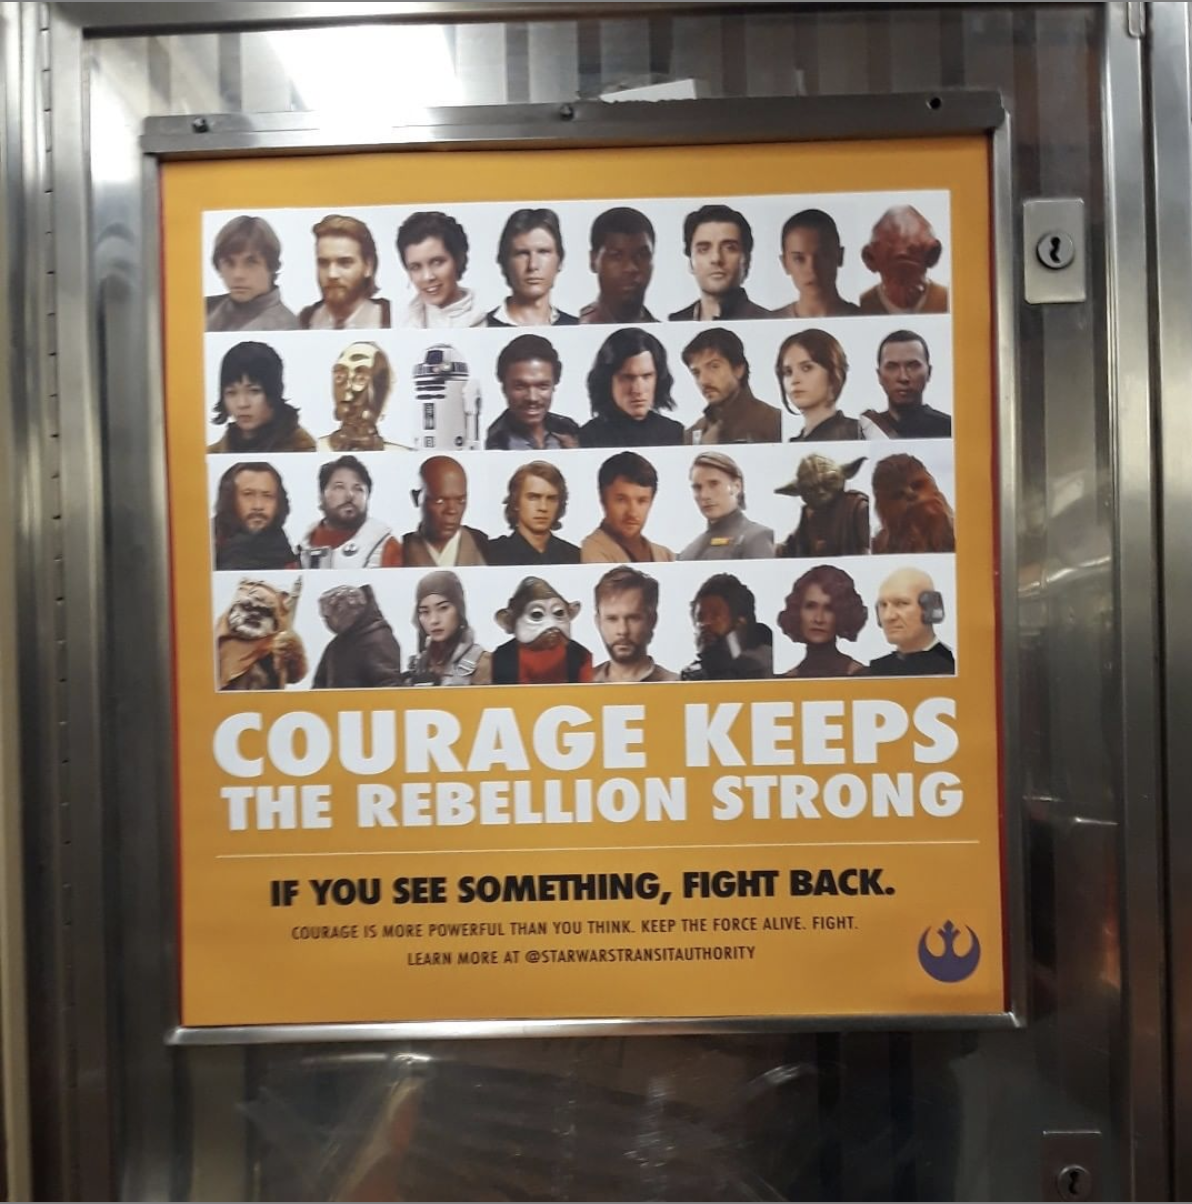 poster inside an MTA subway cart featuring the cast from the Star Wars films titled